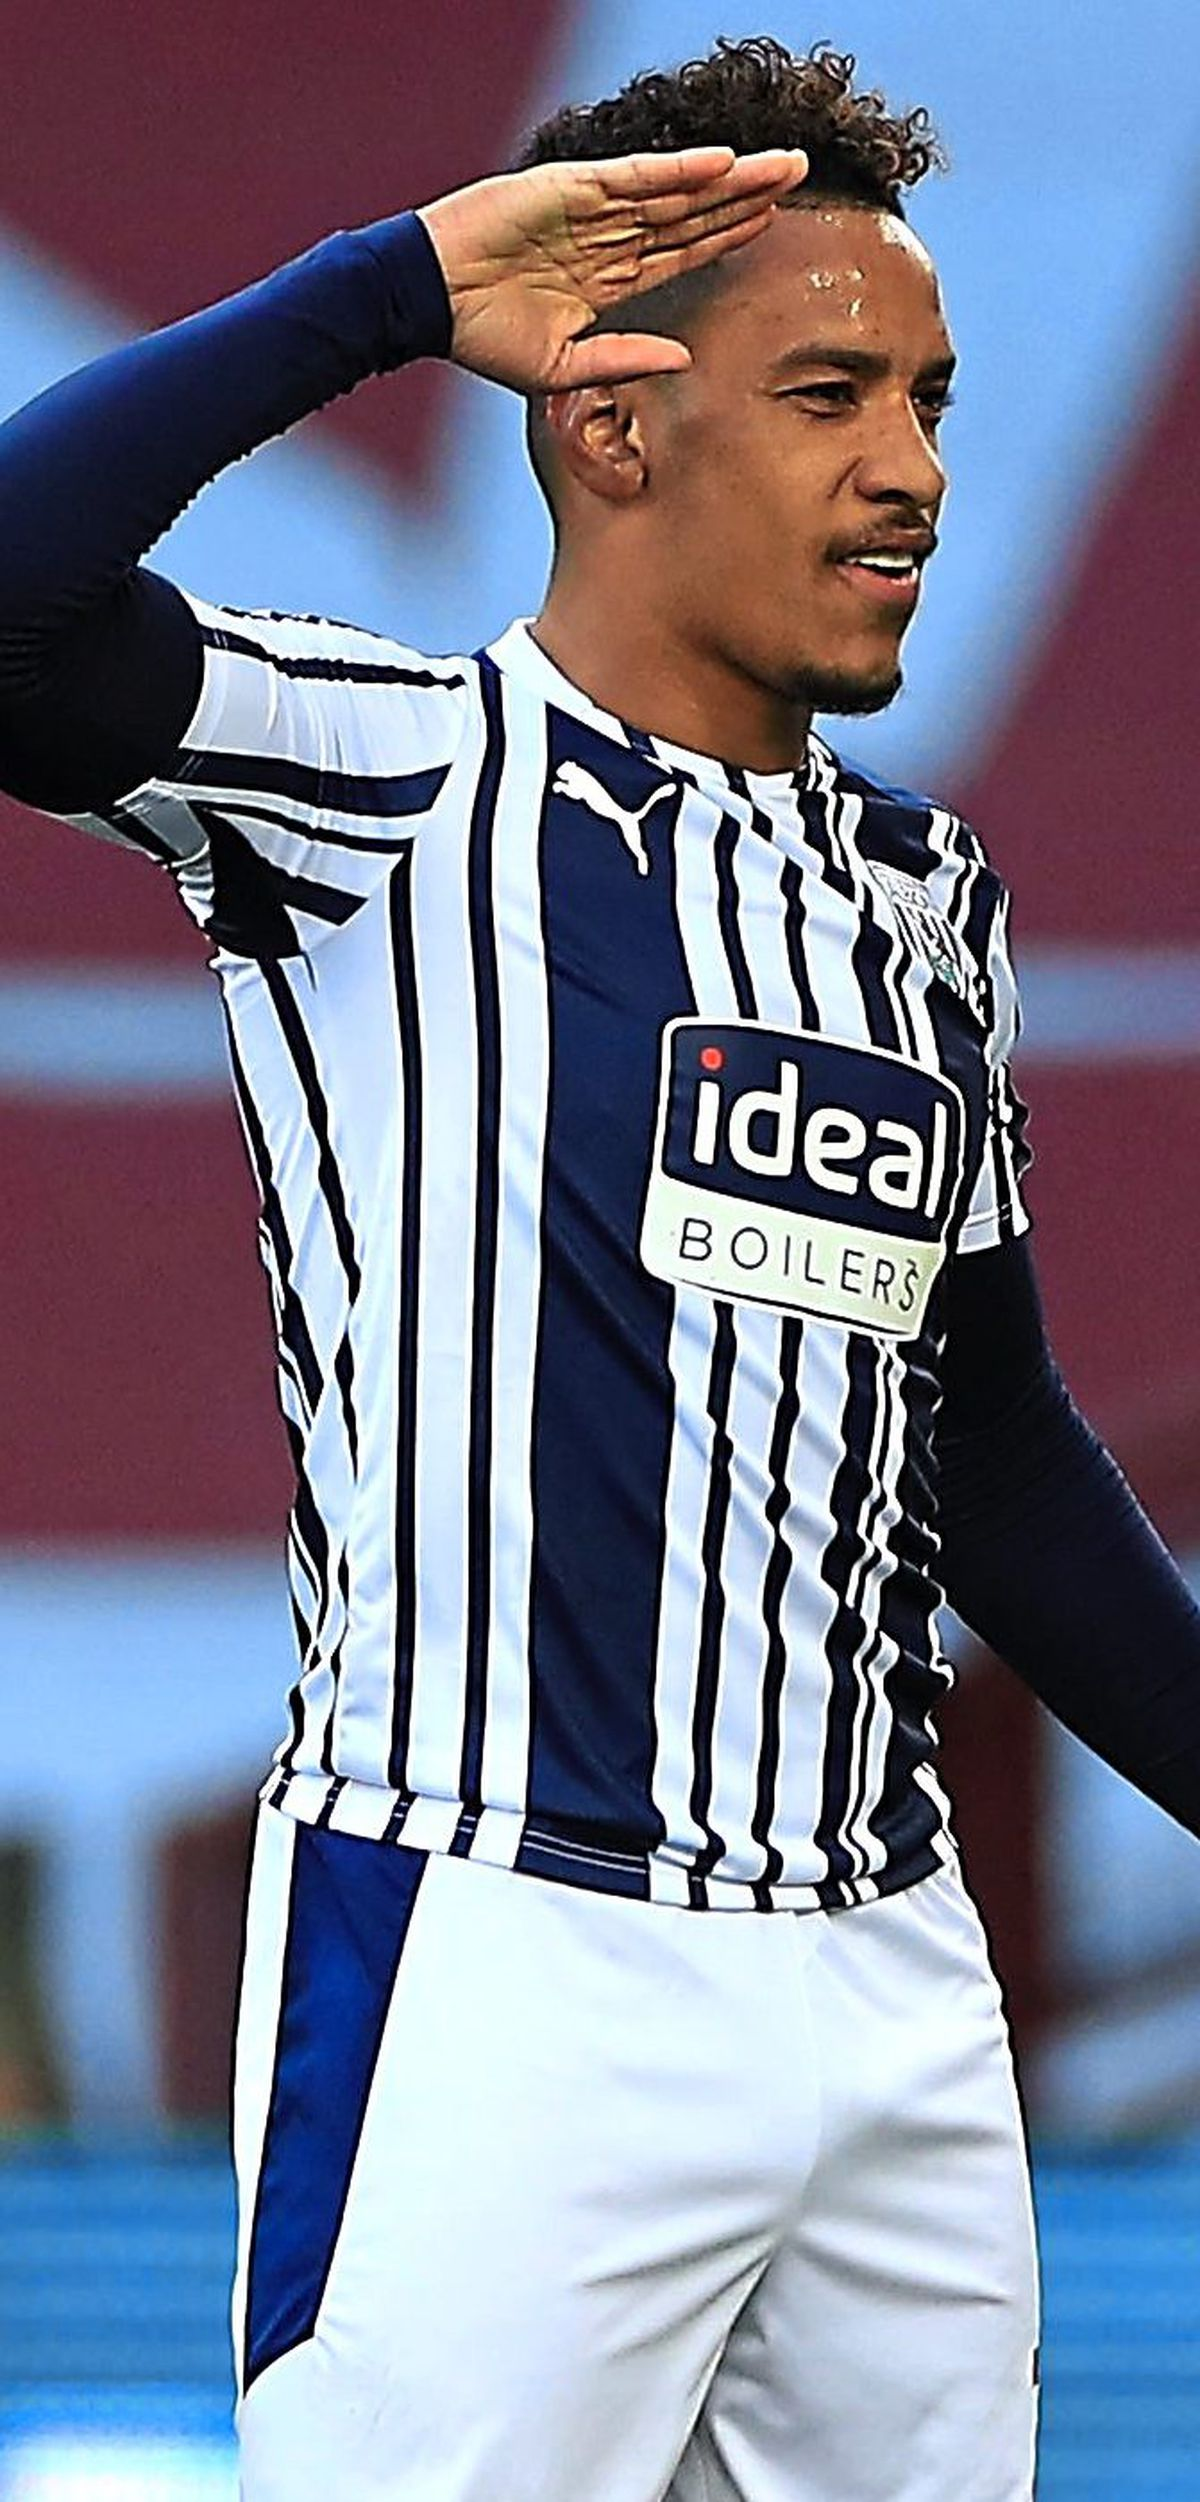 """West Bromwich Albion's Matheus Pereira celebrates scoring their side's first goal of the game during the Premier League match at Villa Park, Birmingham. Picture date: Sunday April 25, 2021. PA Photo. See PA story SOCCER Villa. Photo credit should read: Mike Egerton/PA Wire.   RESTRICTIONS: EDITORIAL USE ONLY No use with unauthorised audio,  video, data, fixture lists, club/league logos or """"live"""" services. Online in-match use limited to 120 images, no video emulation. No use in betting, games or single club/league/player publications."""